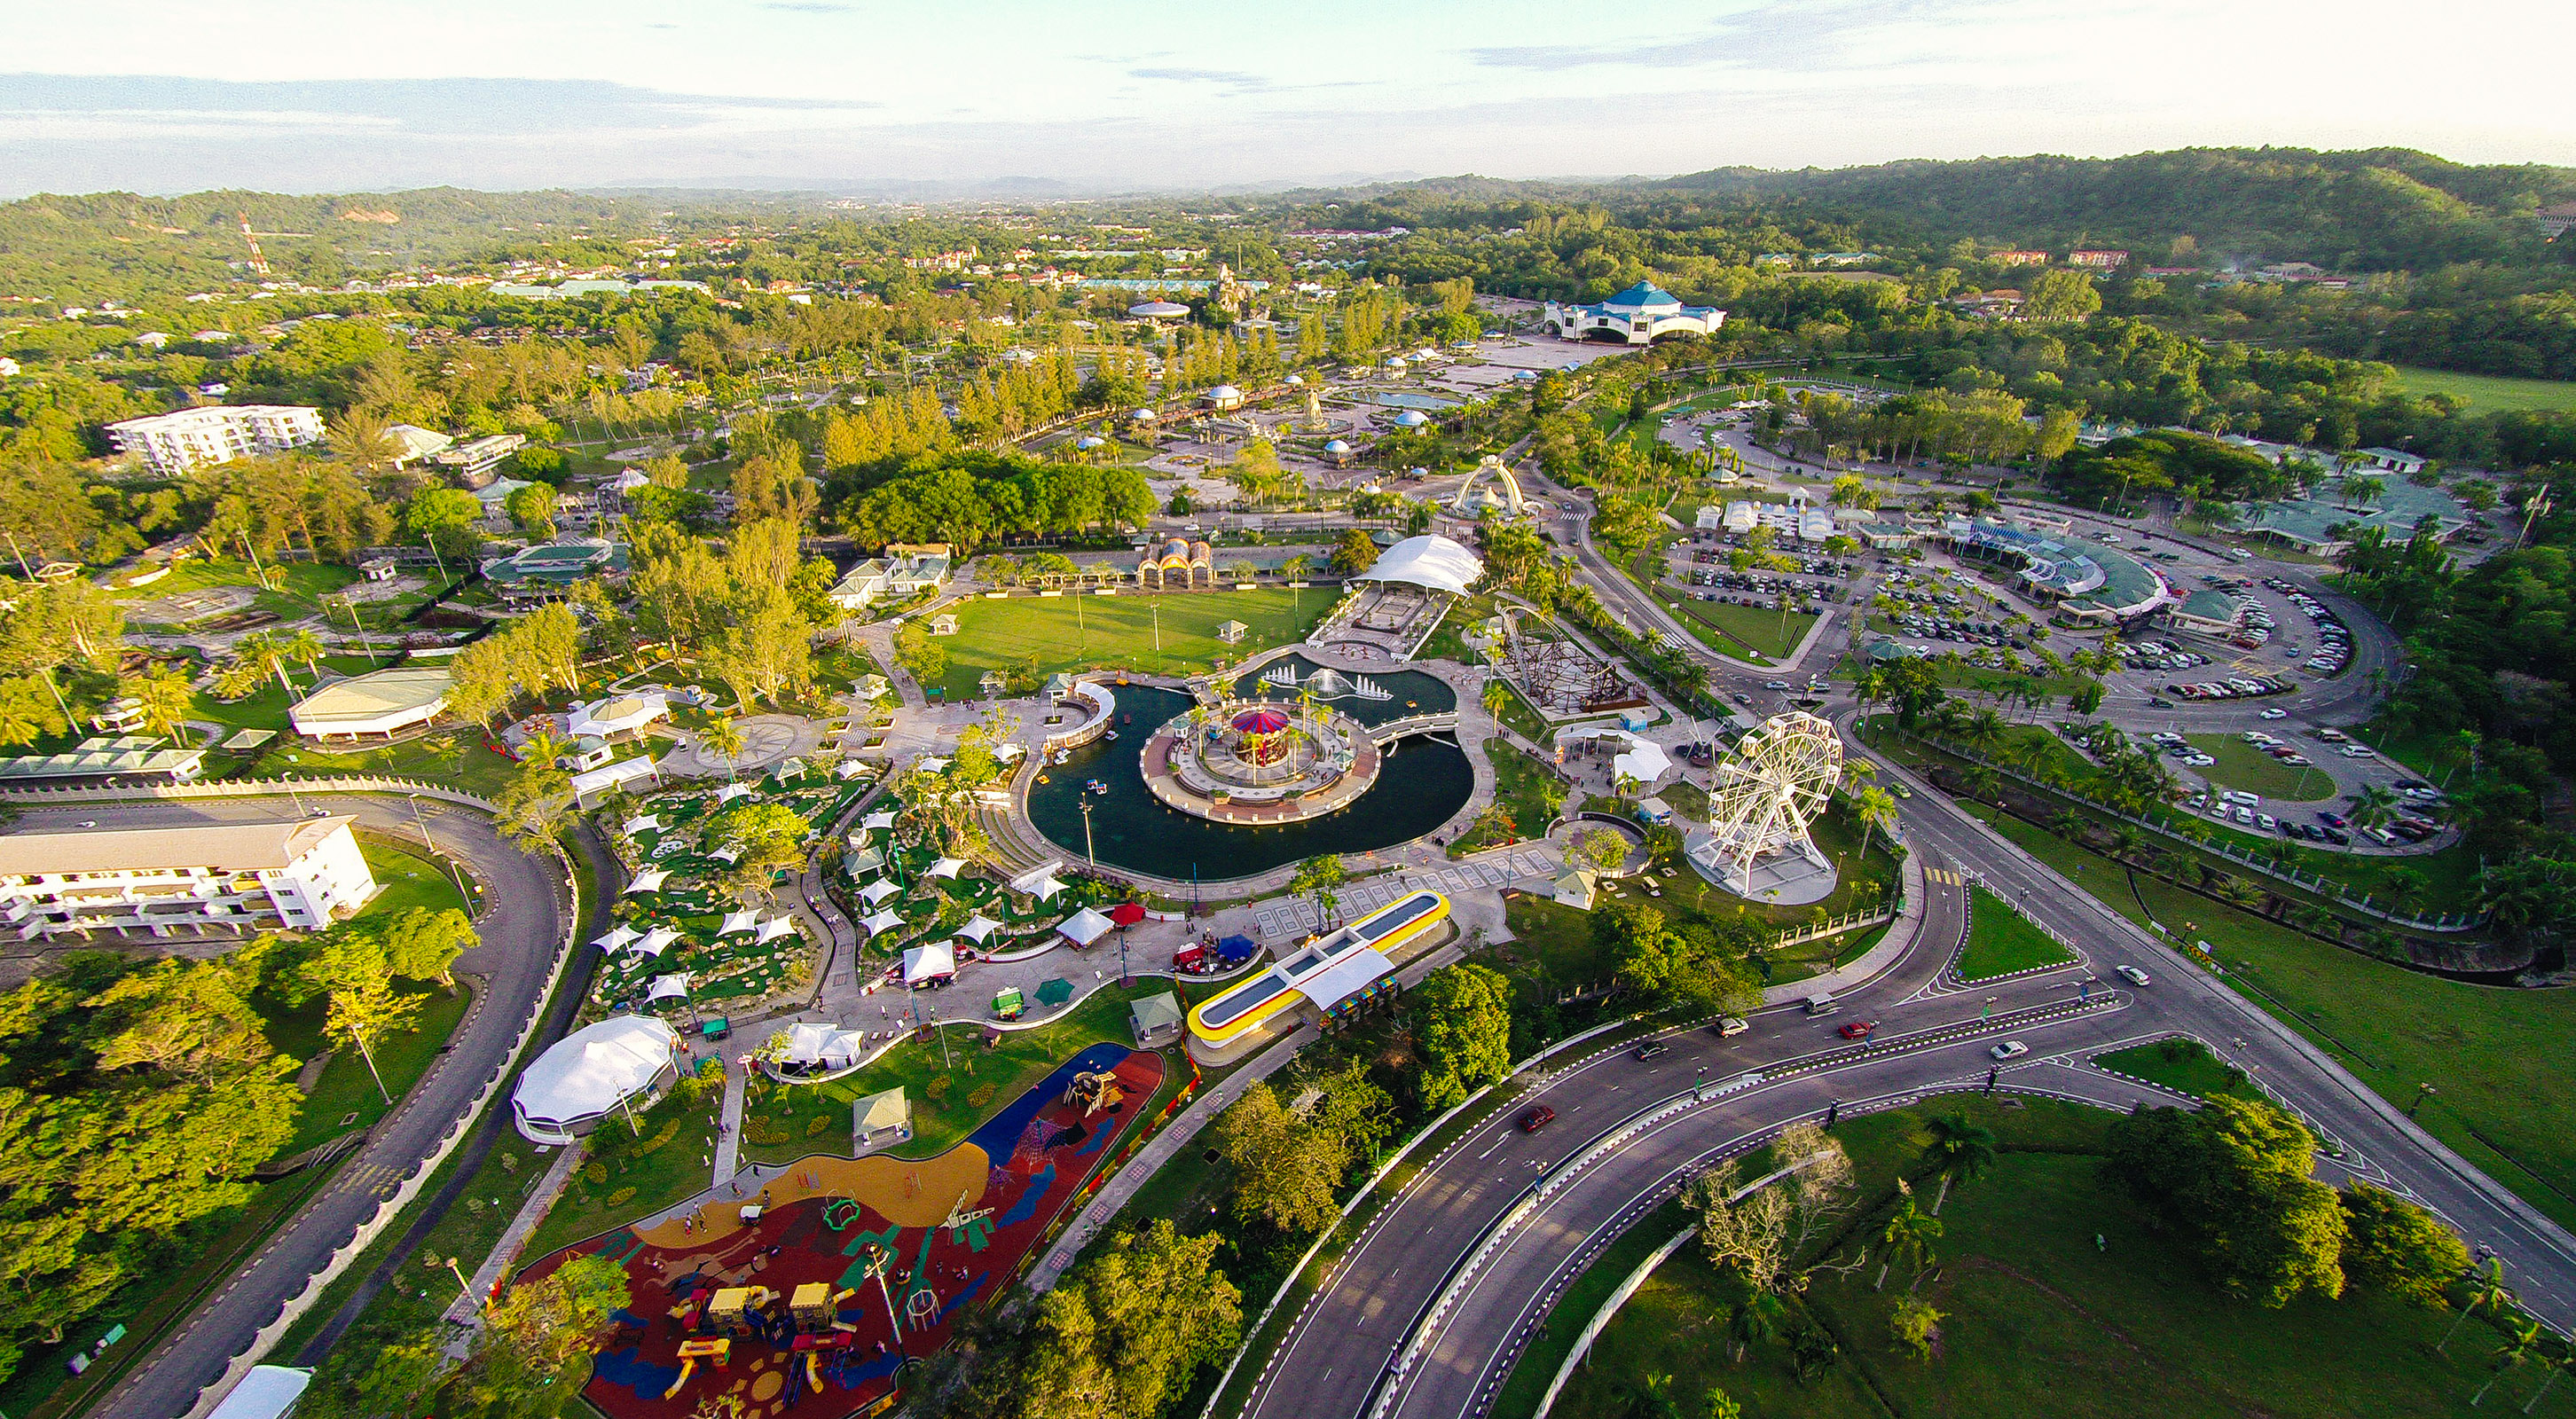 gopro drone with Jerudong Park Playground Brunei Darussalam on Parrot Disco El Drone De Ala Fija Y Piloto Automatico moreover Best Drones For Photography additionally Watch likewise Watch further Dji Drops The Mic New Phantom 4 Pro Inspire 2 Drones Announced.